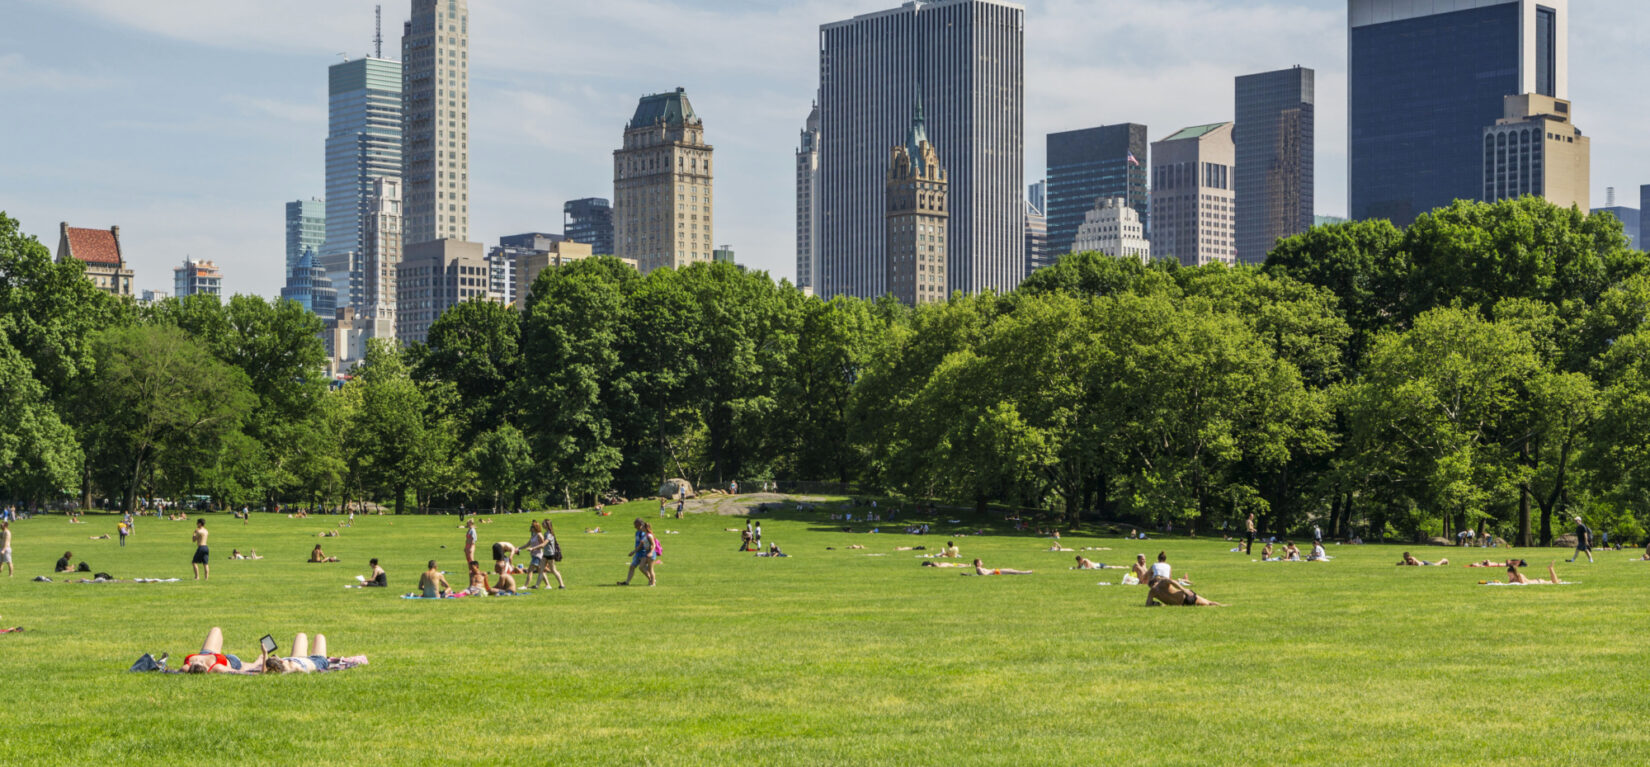 Parkgoers lounge on Sheep Meadow, with the skyscrapers of Manhattan's East Side filling the horizon.